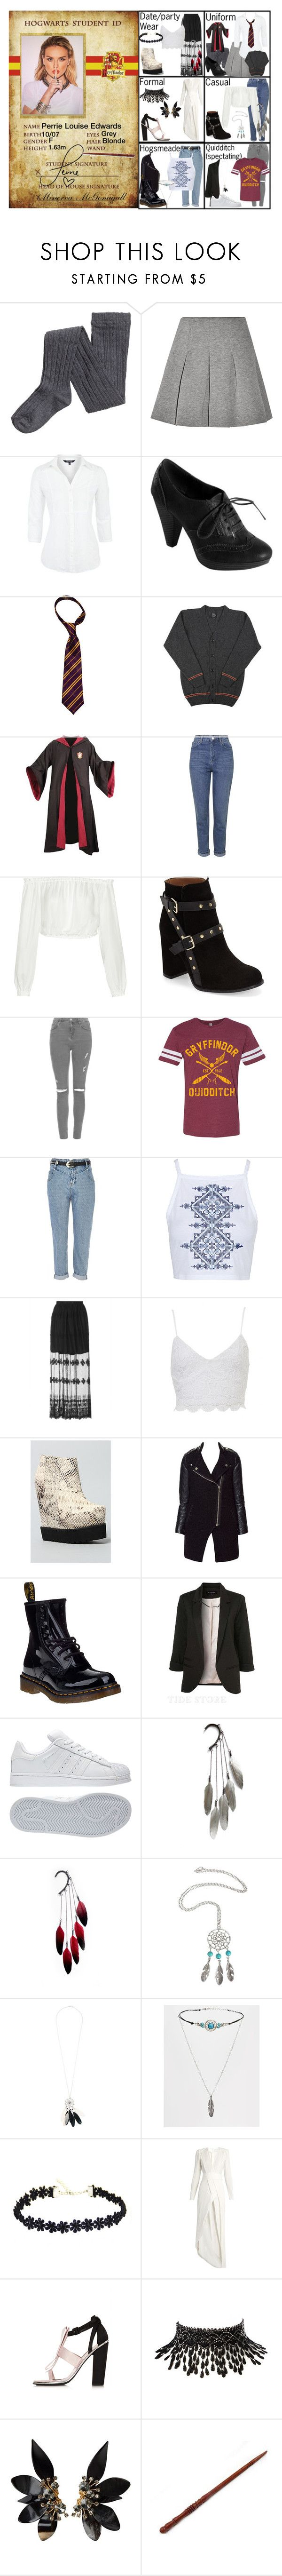 """""""Perrie Edwards in Gryffindor (HP)"""" by elmoakepoke ❤ liked on Polyvore featuring T By Alexander Wang, Maine New England, Topshop, Elizabeth and James, River Island, Zeno, Zara, Dr. Martens, adidas and Anni Jürgenson"""